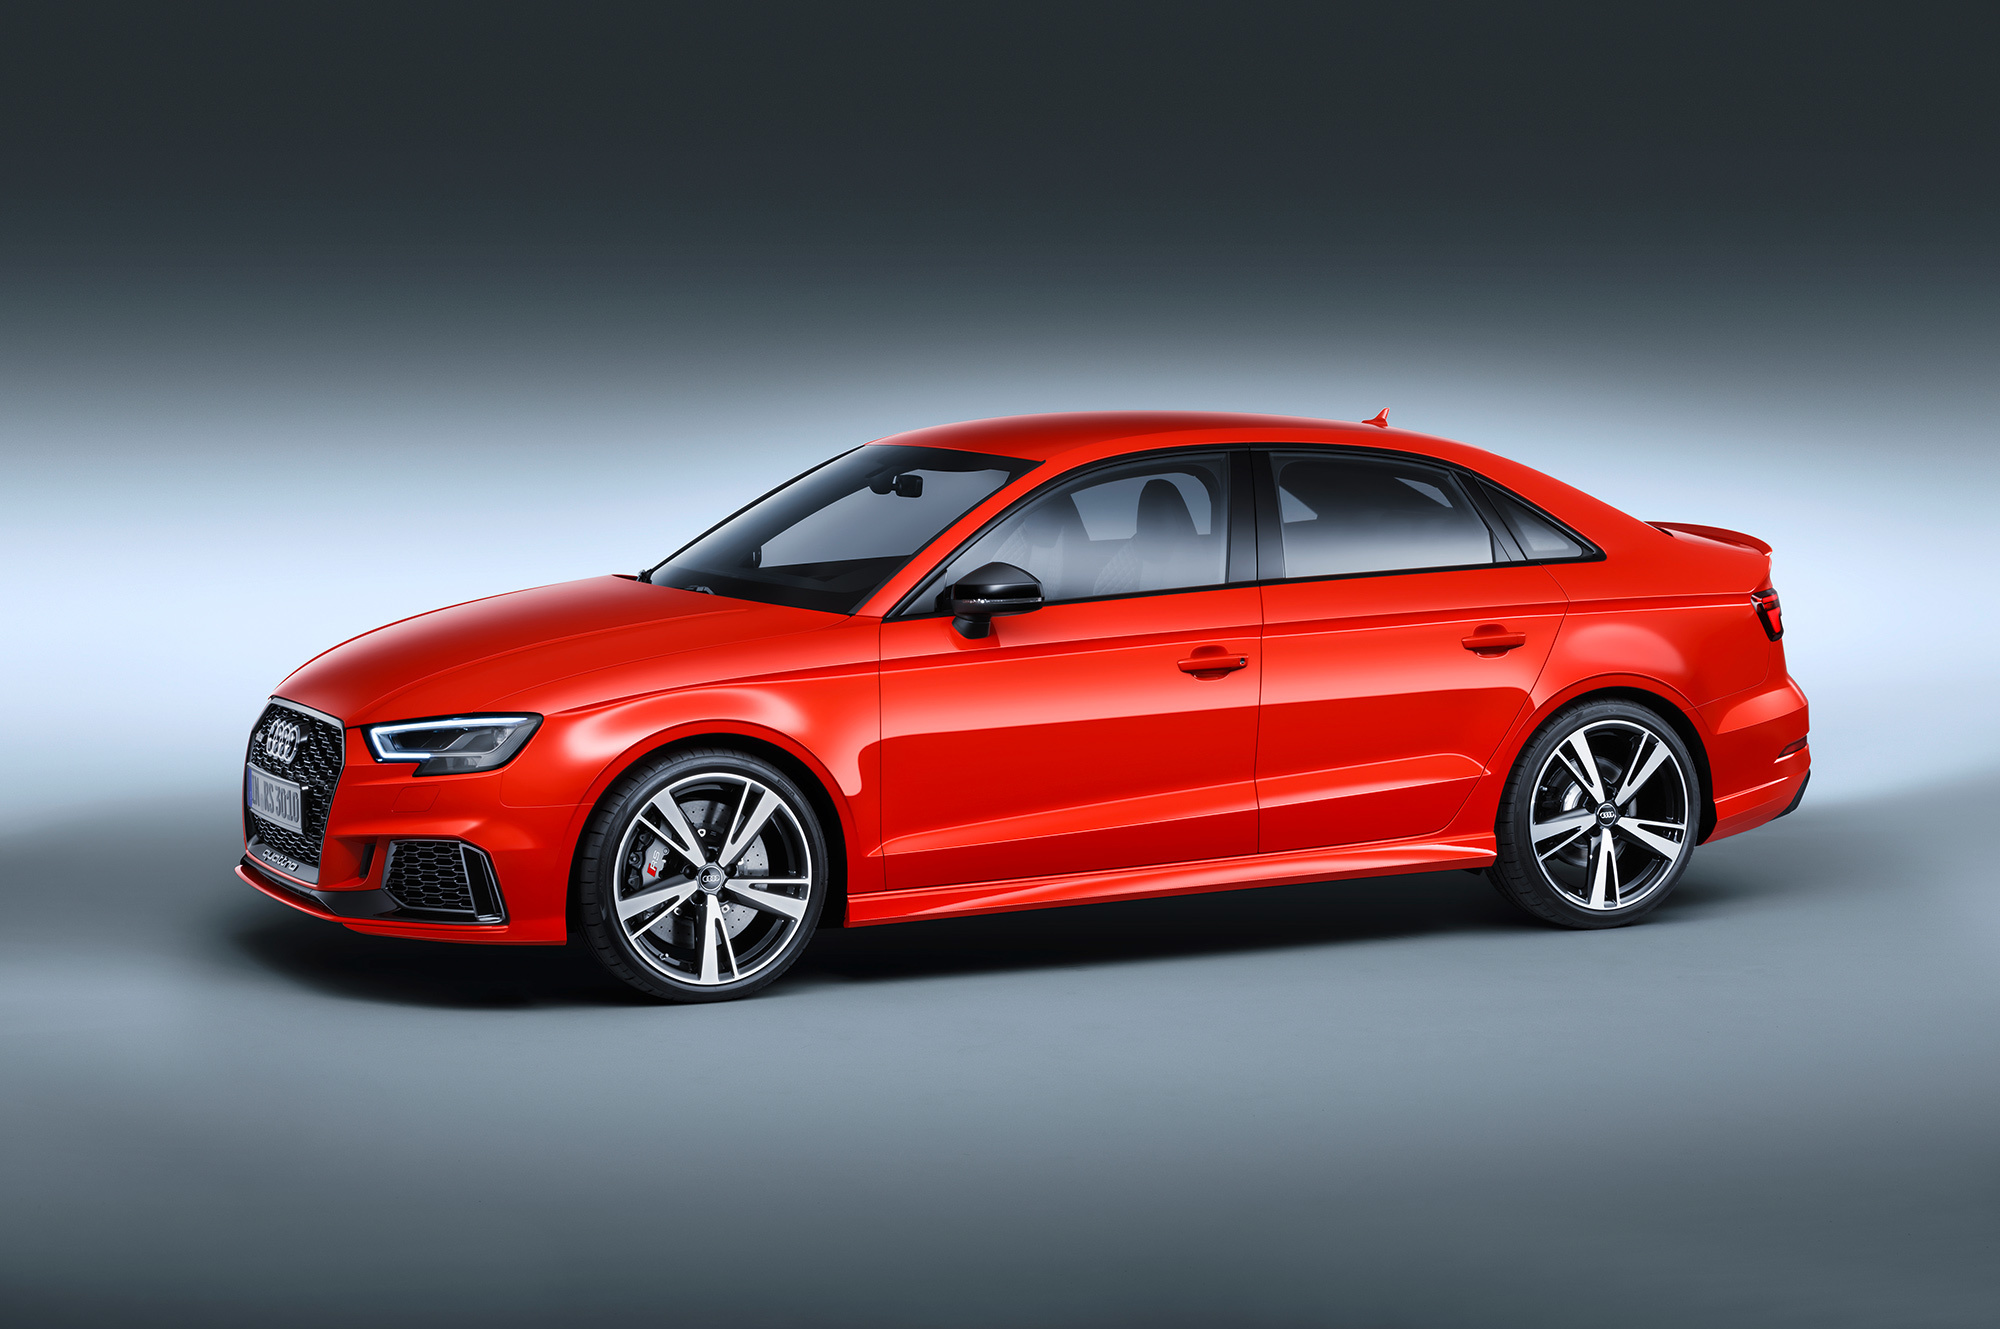 audi rs 3 wallpapers images photos pictures backgrounds. Black Bedroom Furniture Sets. Home Design Ideas